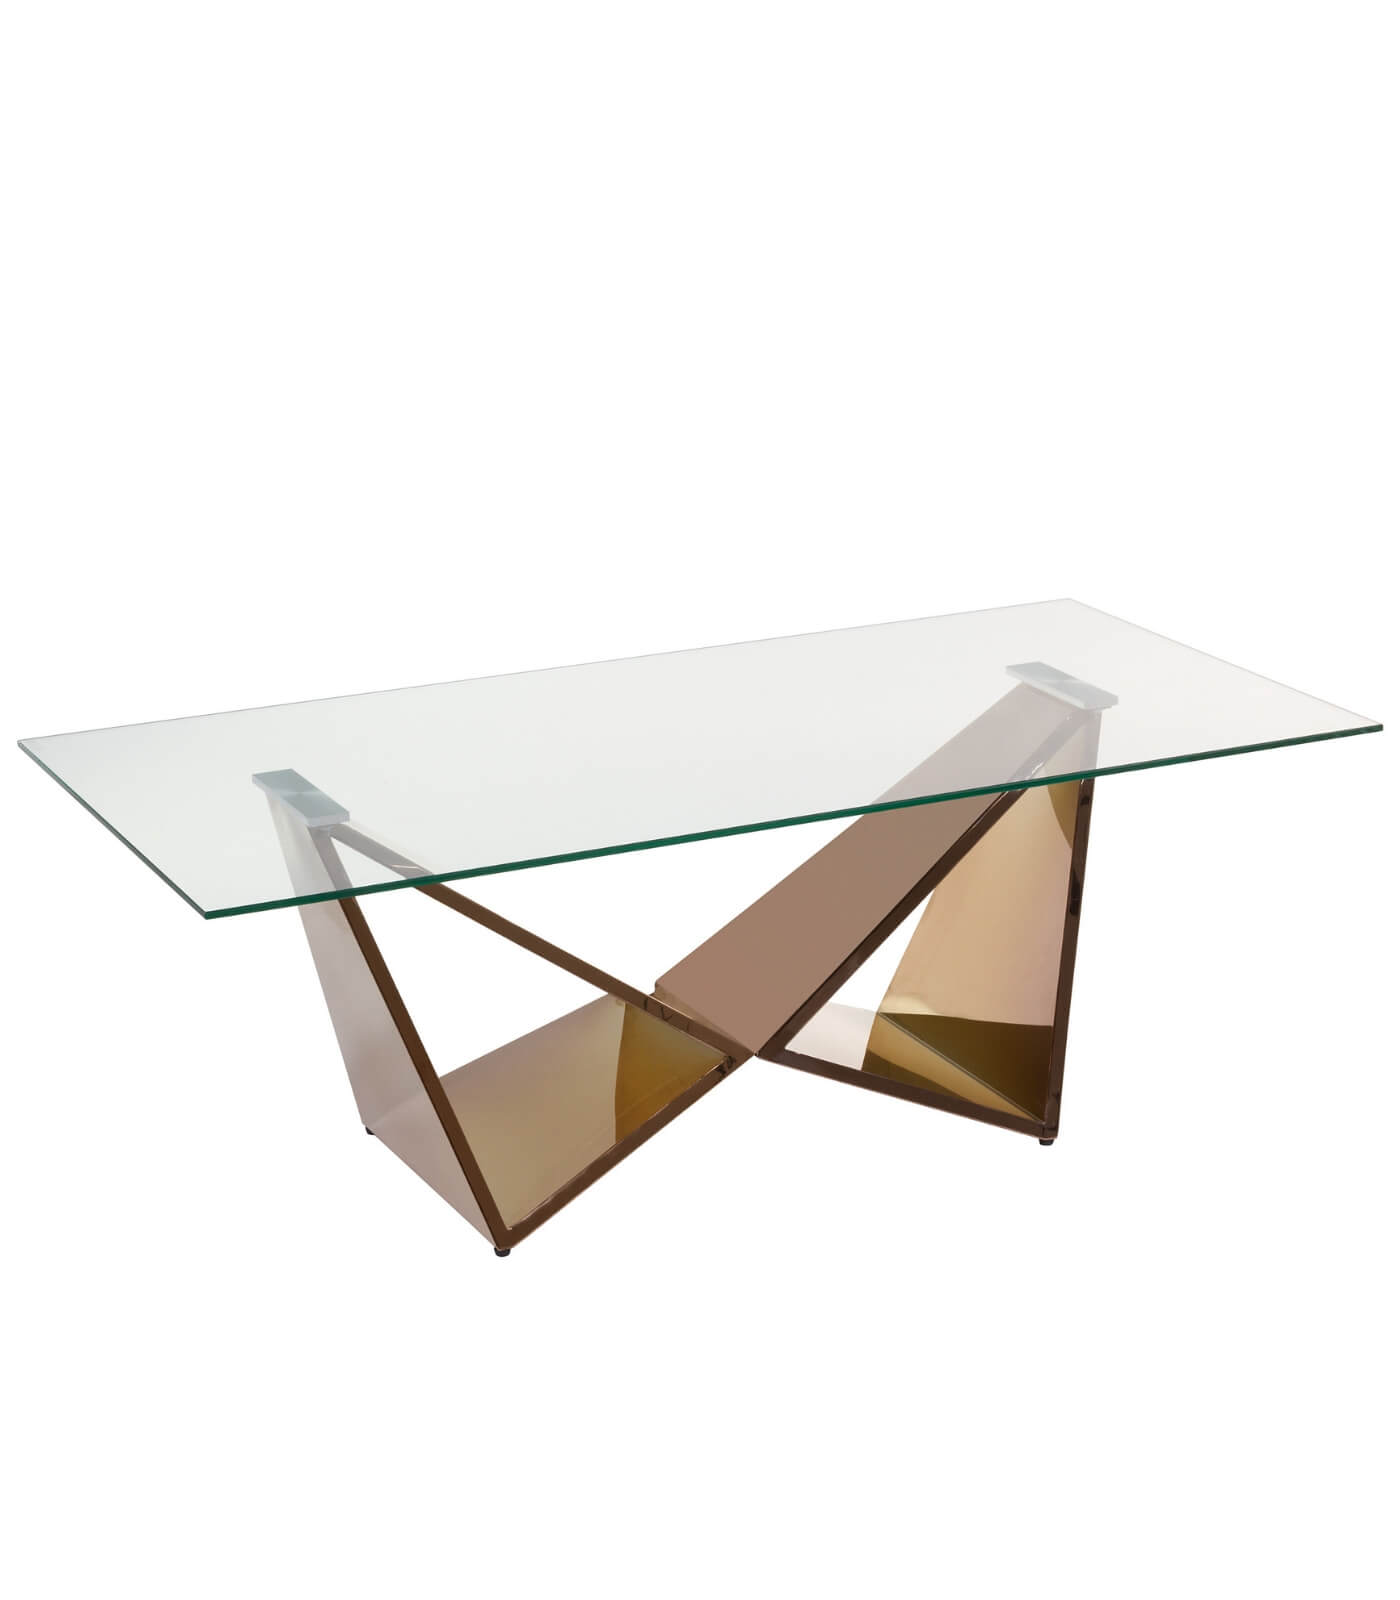 Flash Gold Table Basse Basse Table Verrerose UqpzVSM